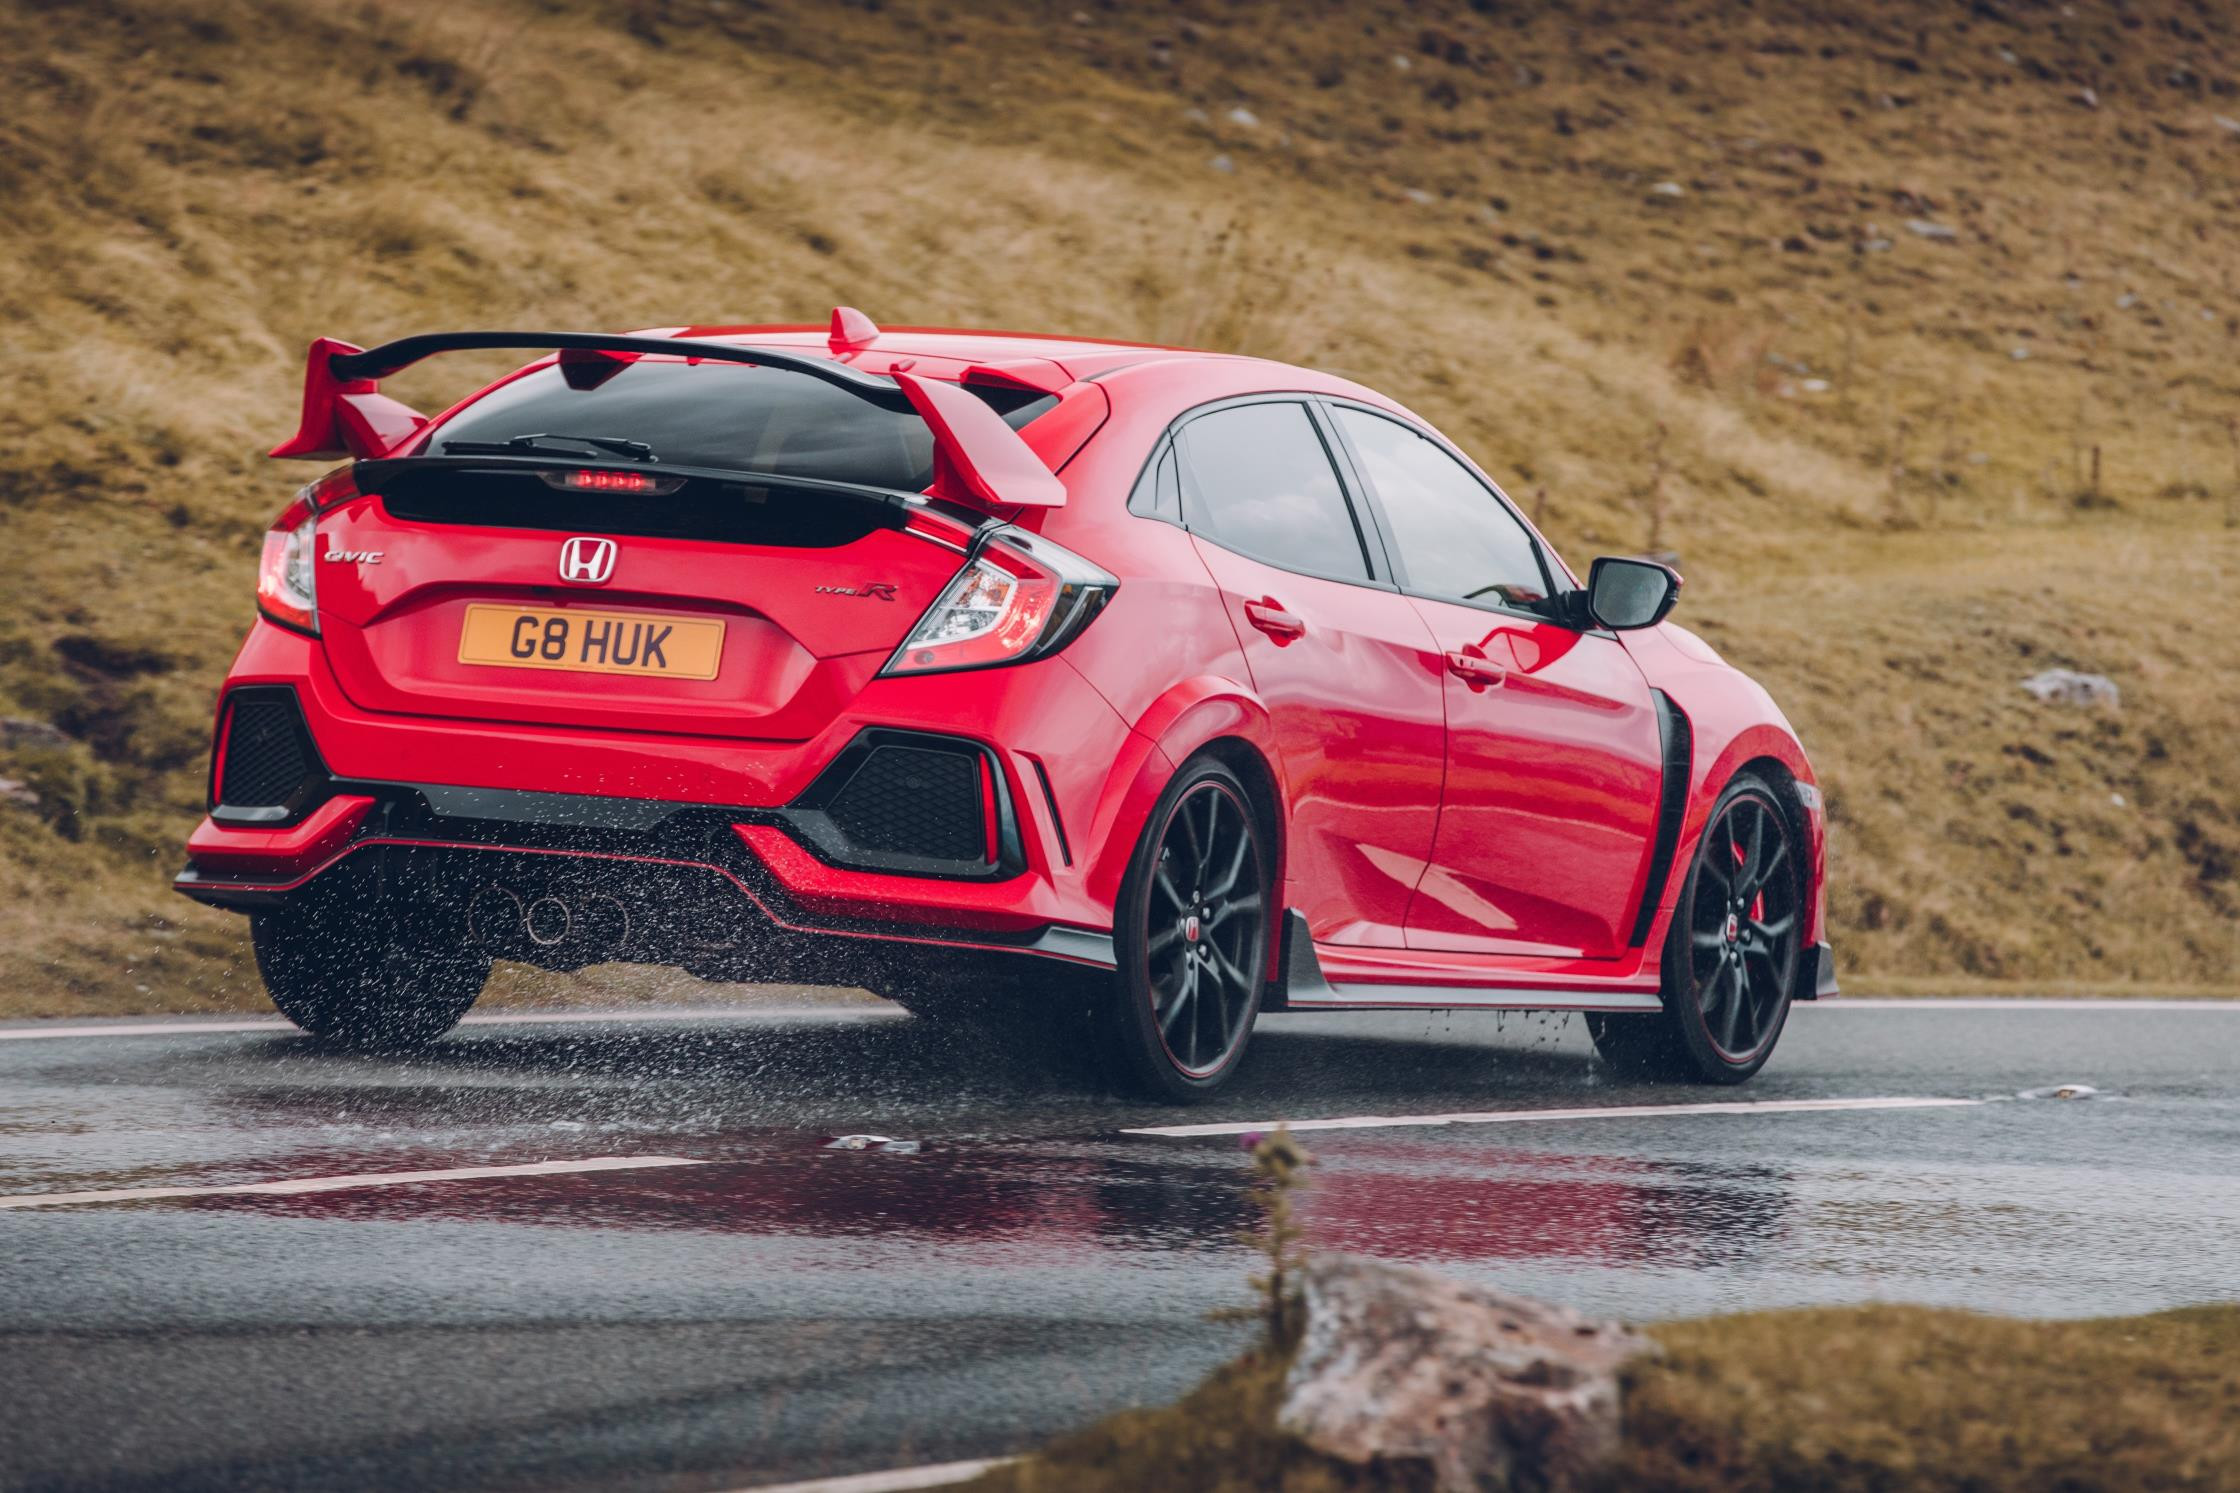 rear view of red Honda Civic Type R